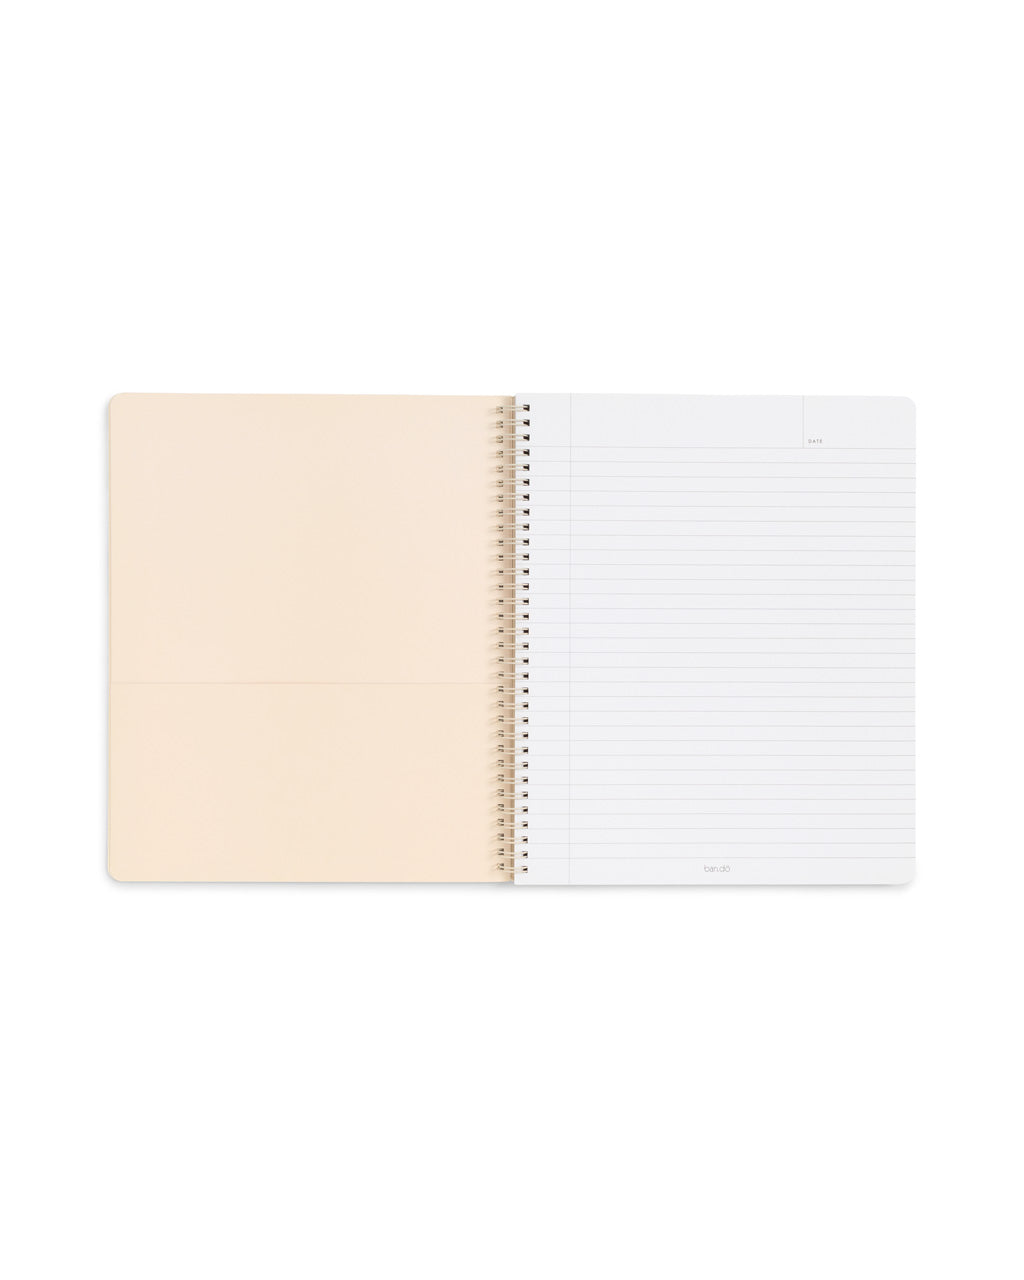 open view of spiral notebook with ivory inner page with pocket, and lined white paper